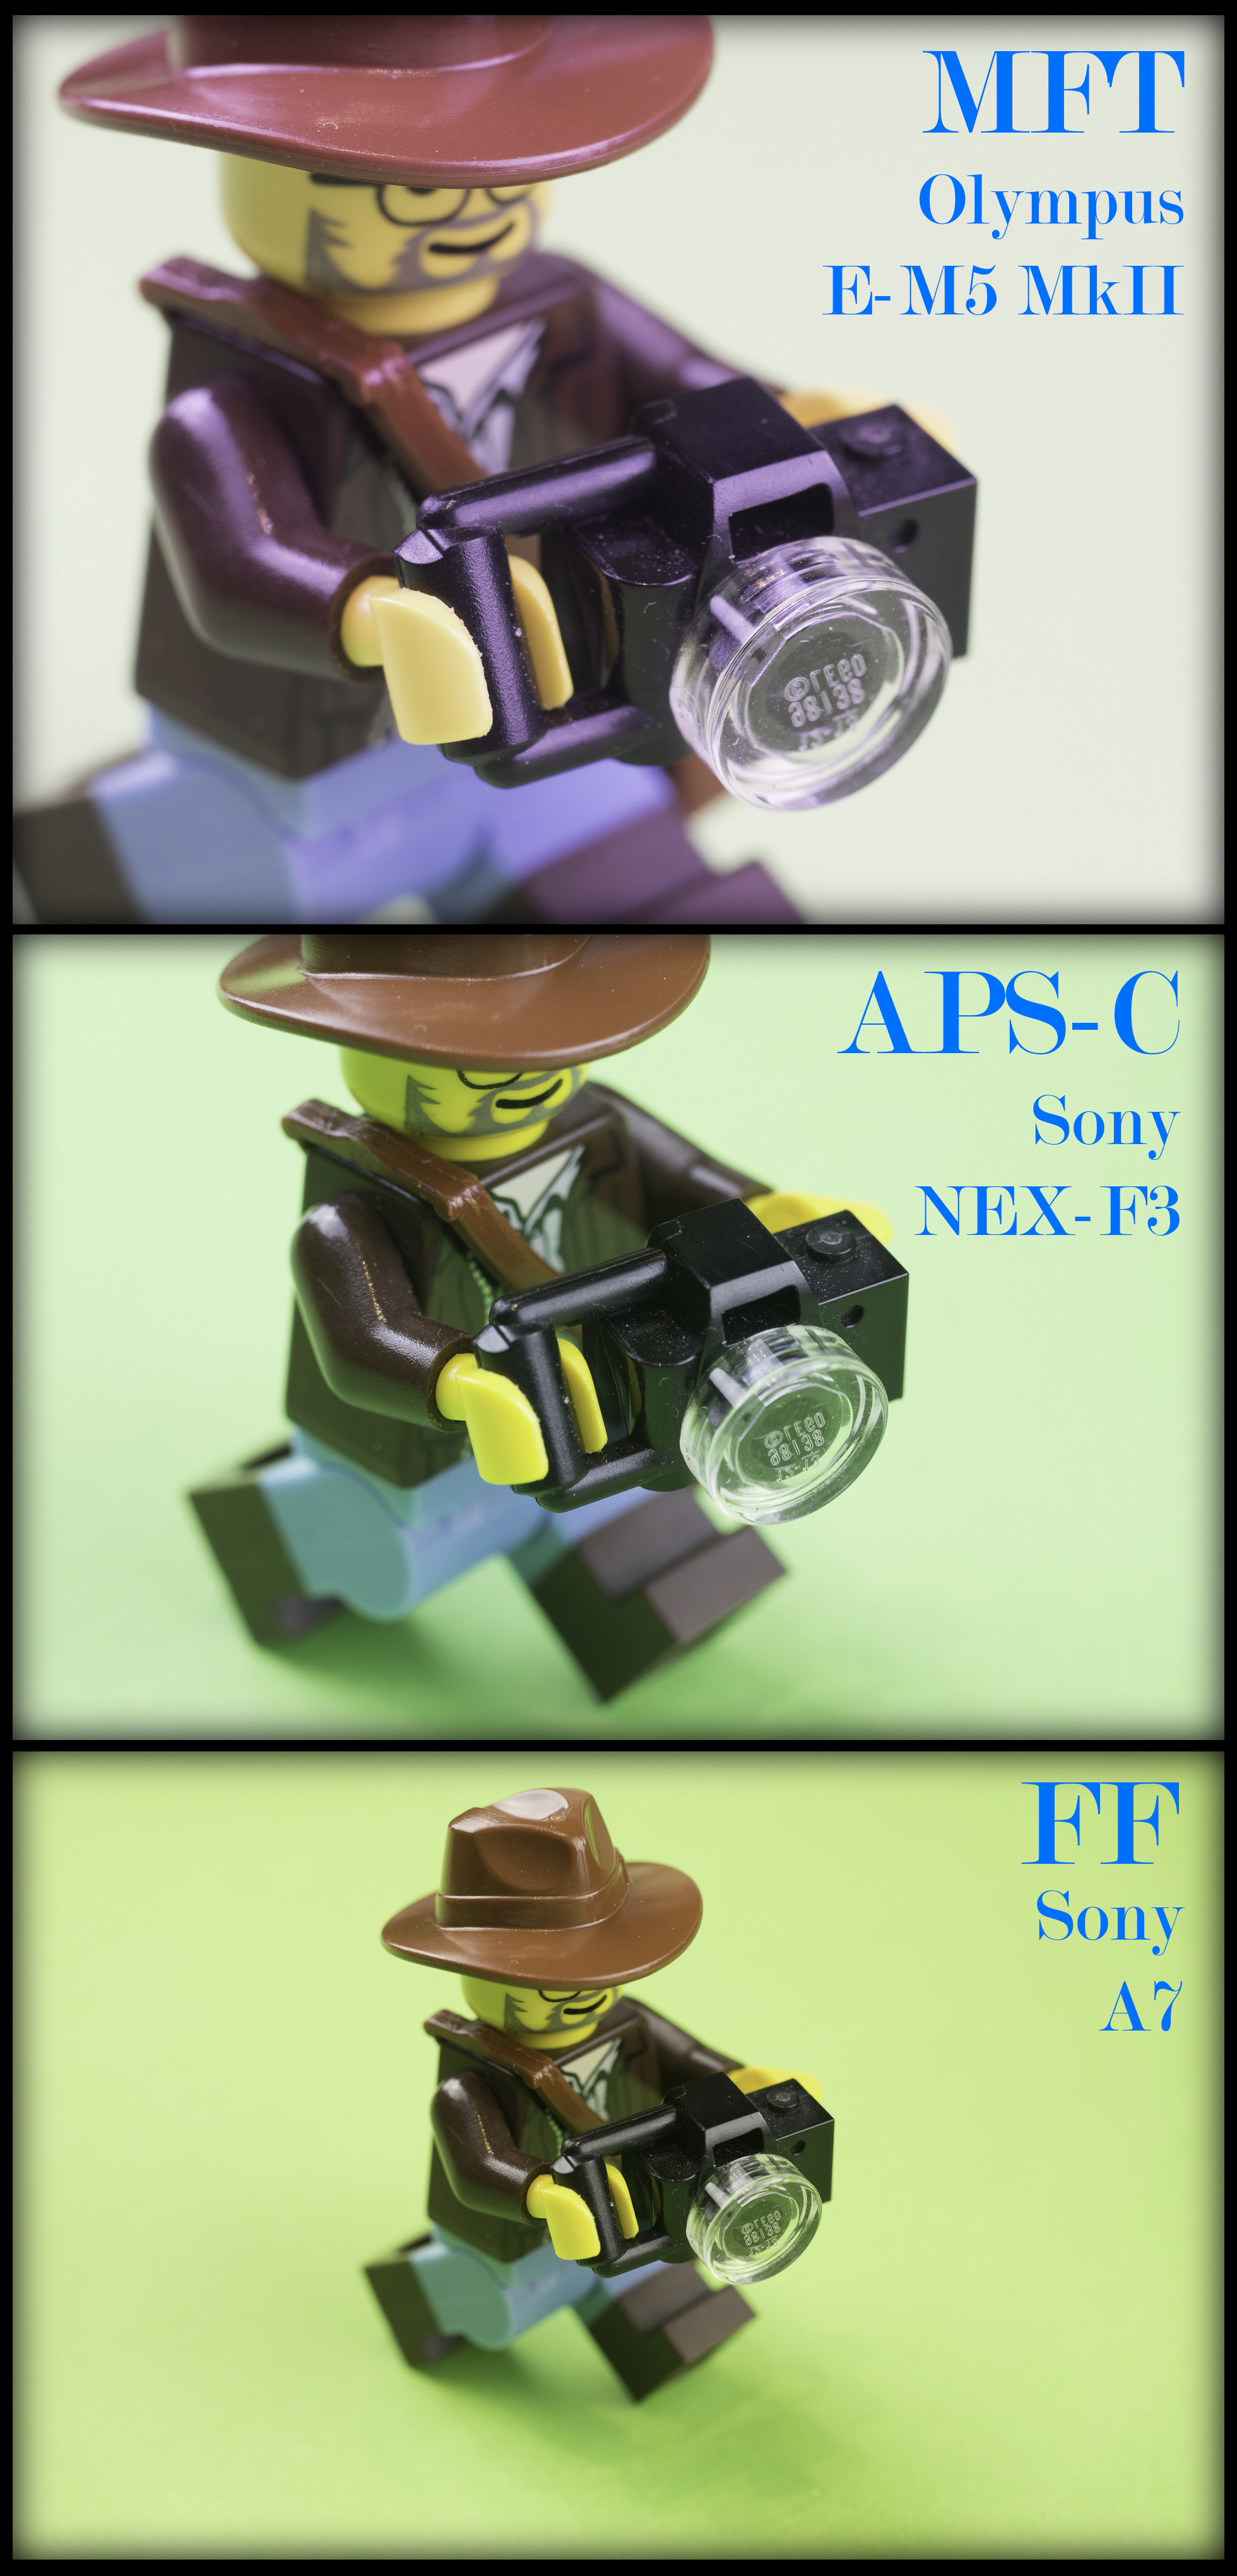 Sensor comparison - MFT, APS-C, FF - Zuiko 50mm f3.5 Macro